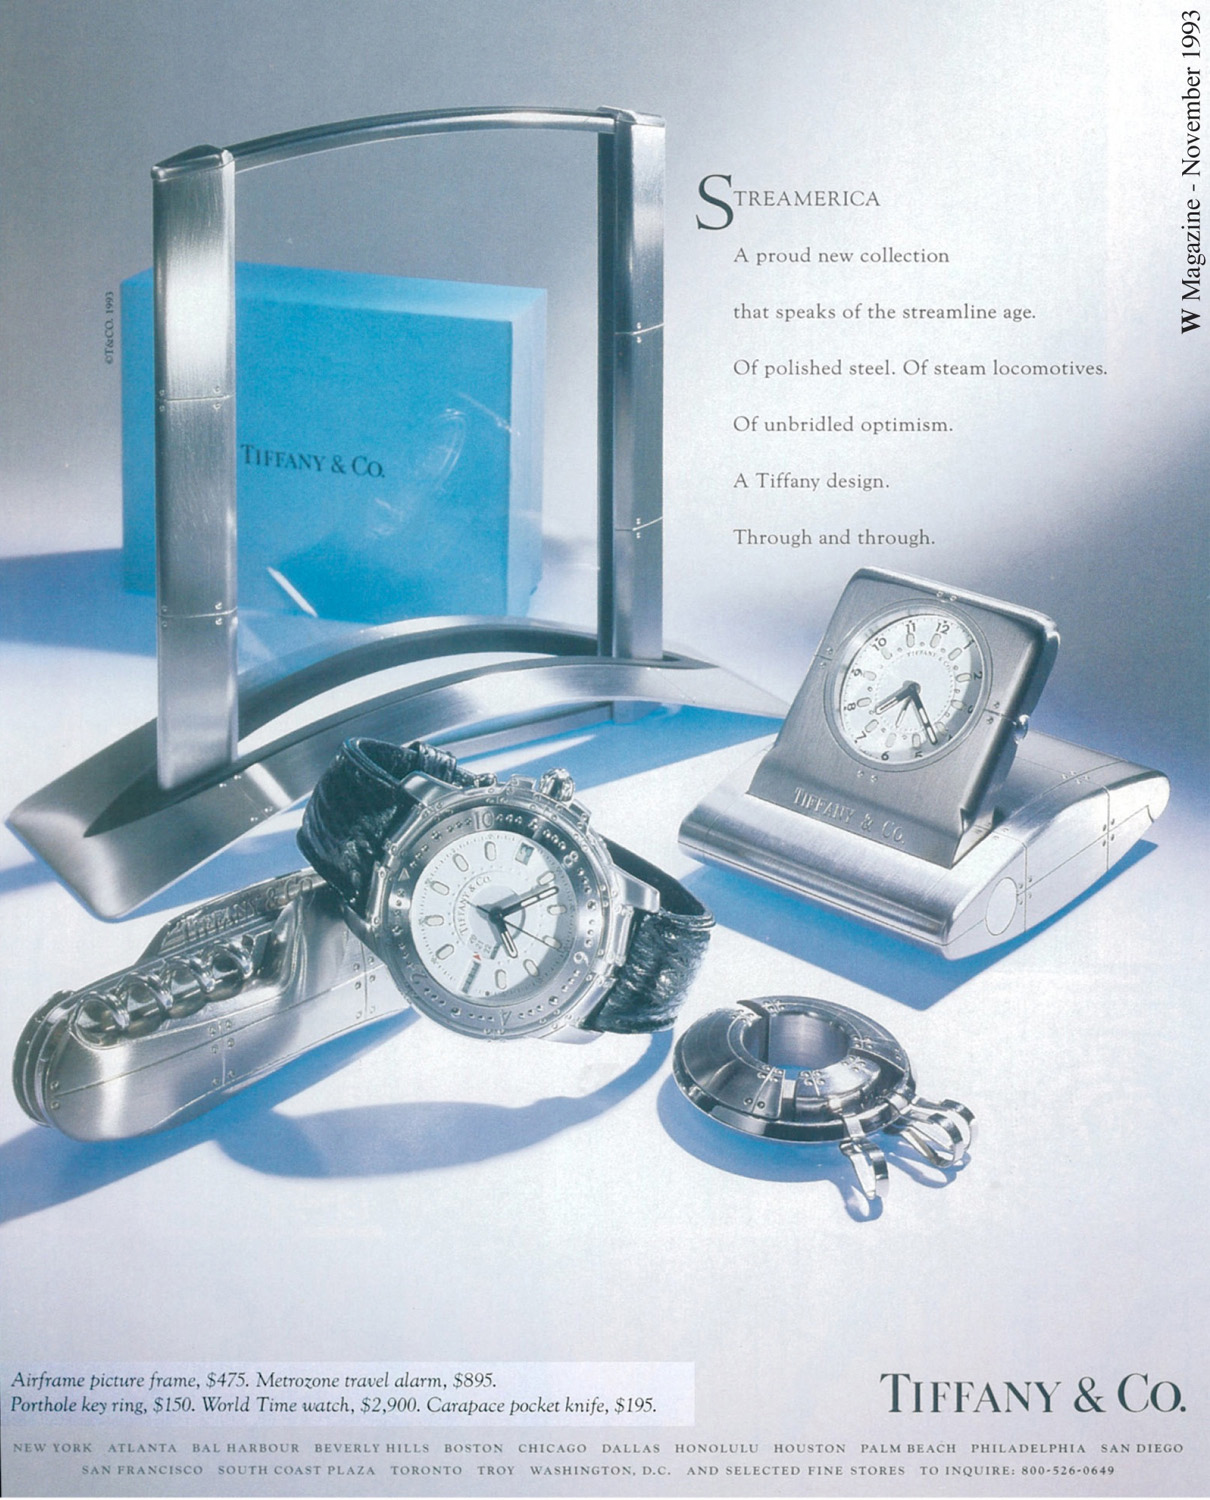 W Magazine Advertisement 1993 debut Streamerica Collection by Tiffany & Co. Airframe Large Picture Frame, Carapace Pocket Knife, World time Watch, Metrozone Travel Alarm, and Porthole Key Ring